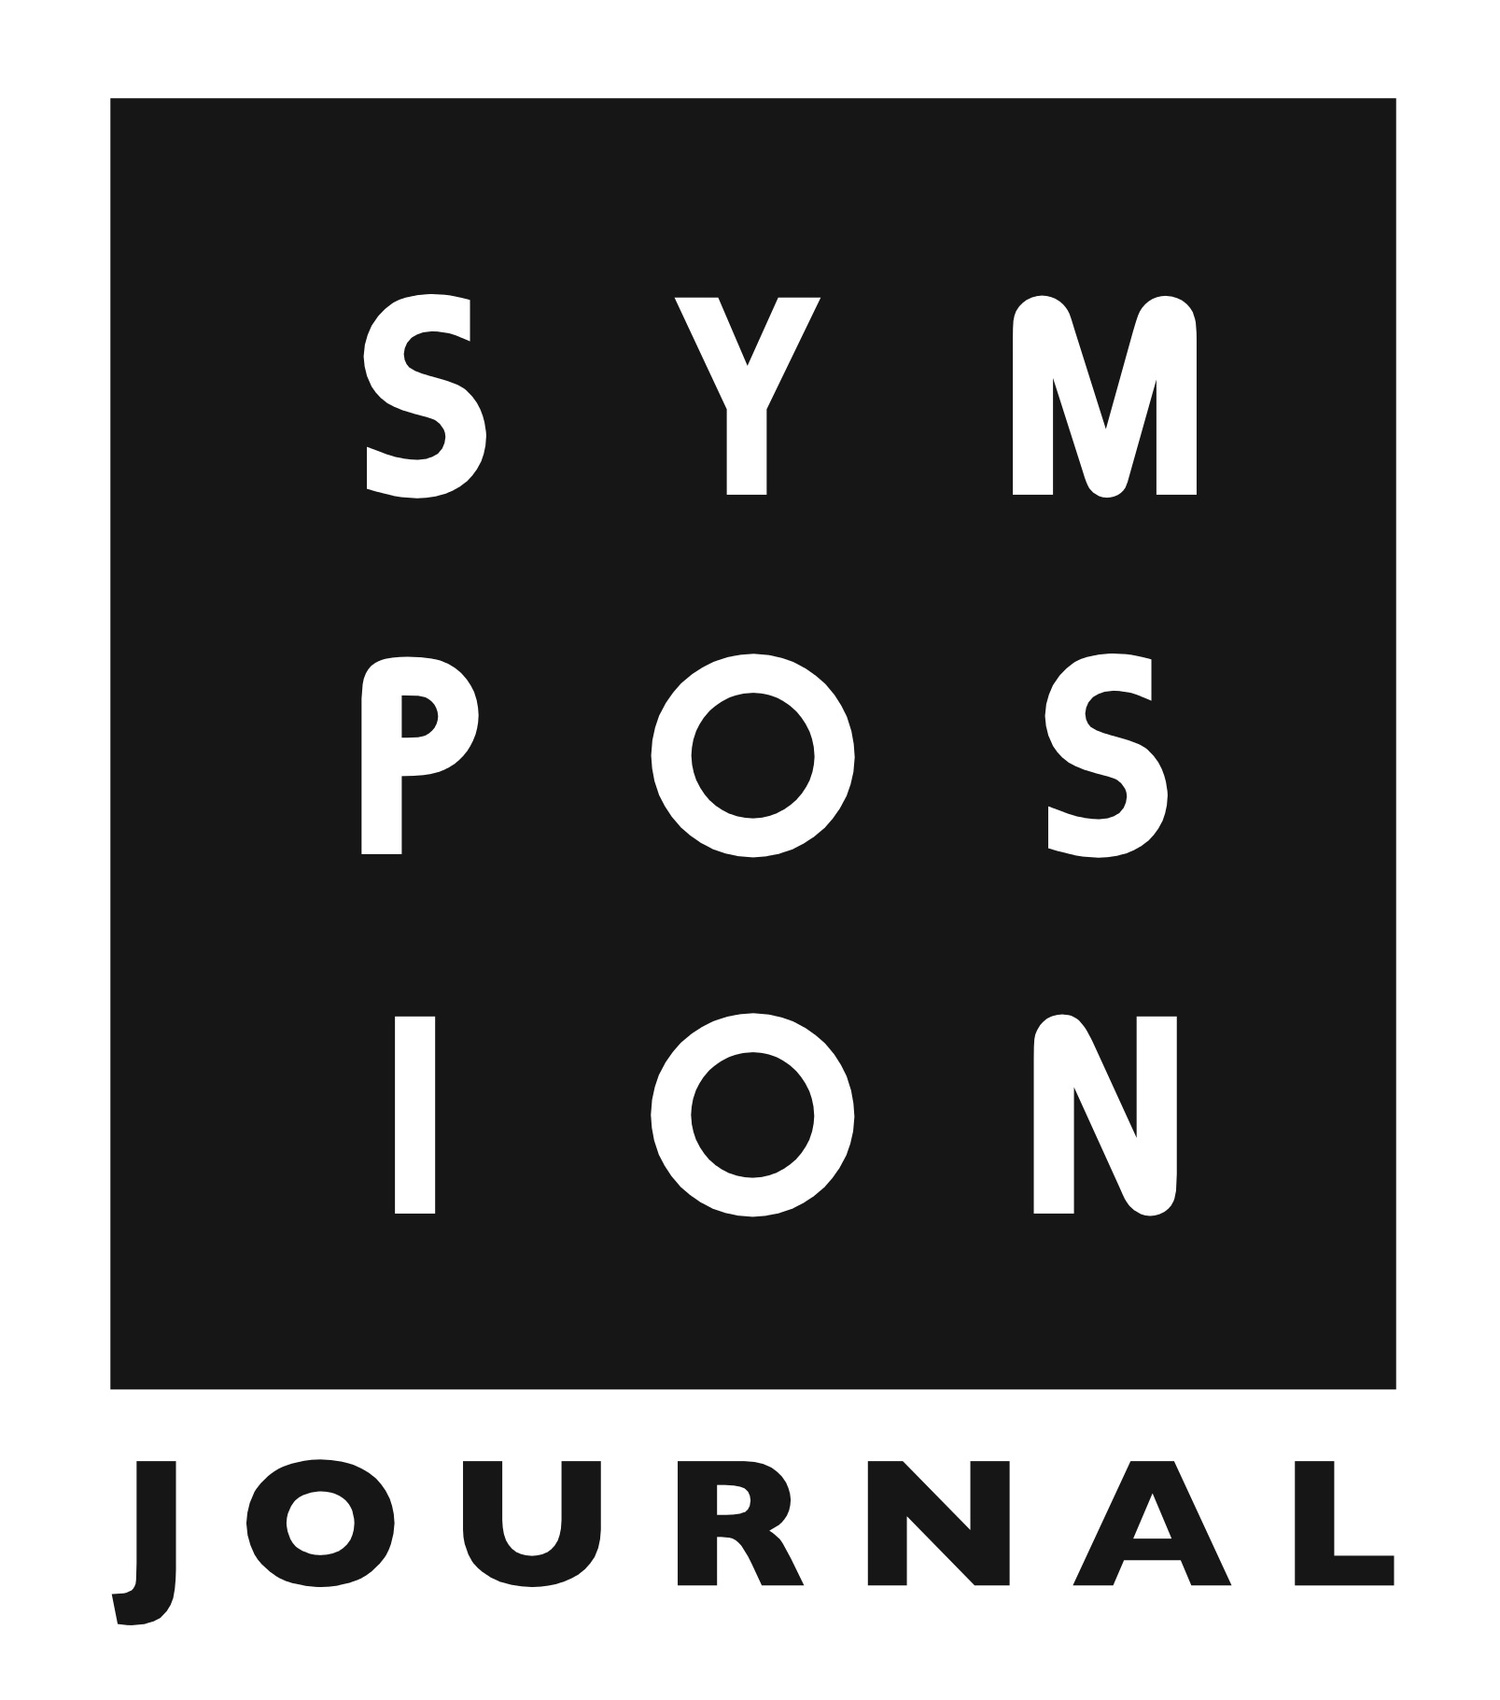 Symposion Journal